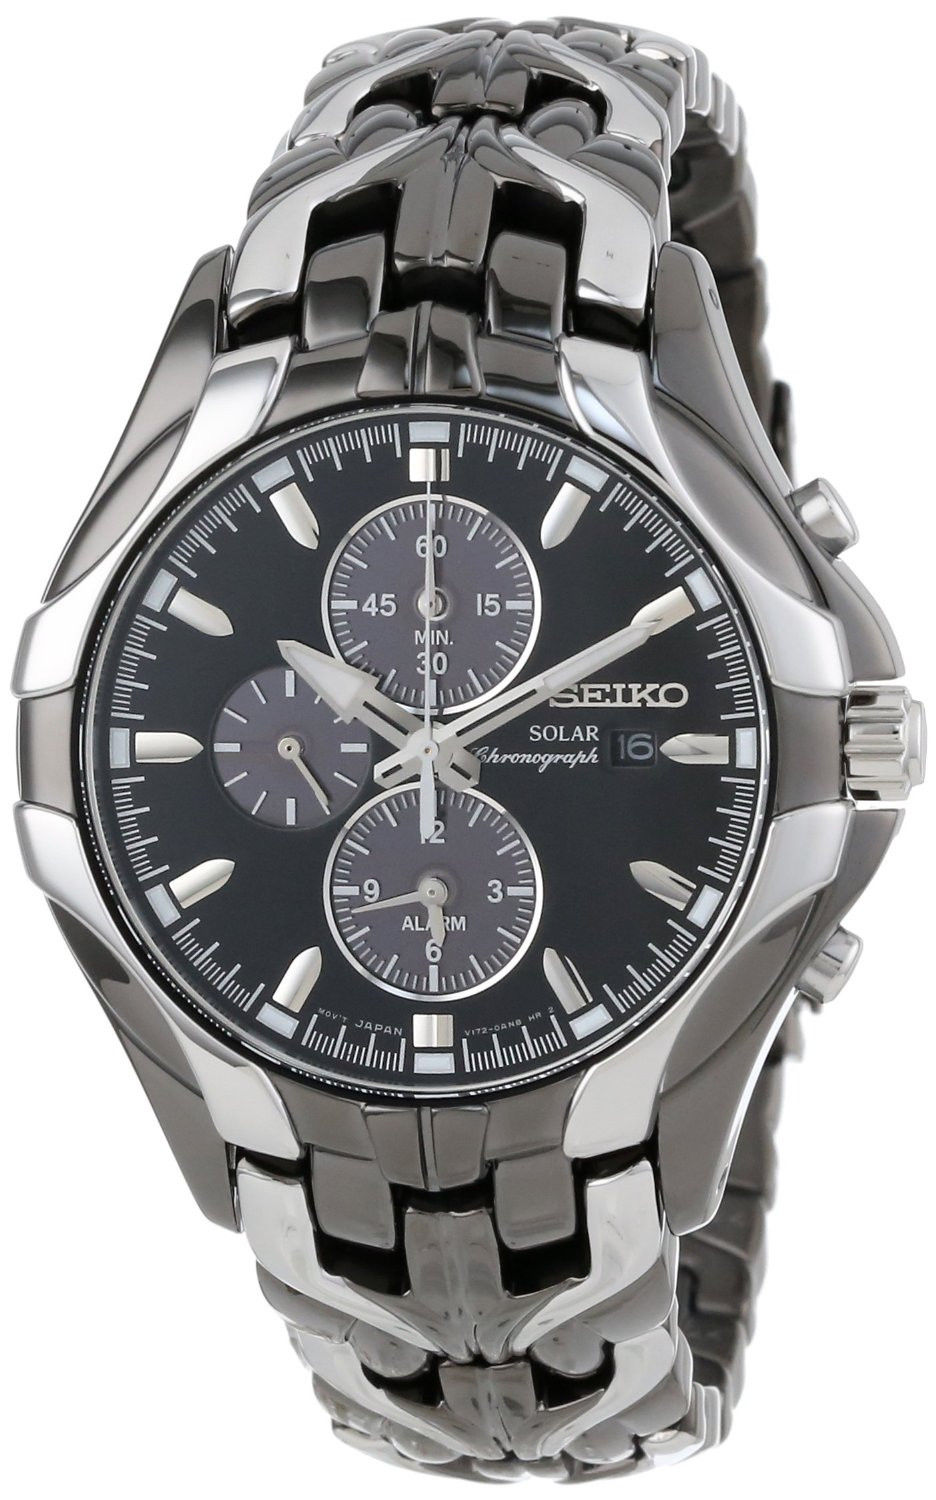 นาฬิกาผู้ชาย Seiko รุ่น SSC139, Seiko Core Solar Stainless Steel Chrono Black Dial